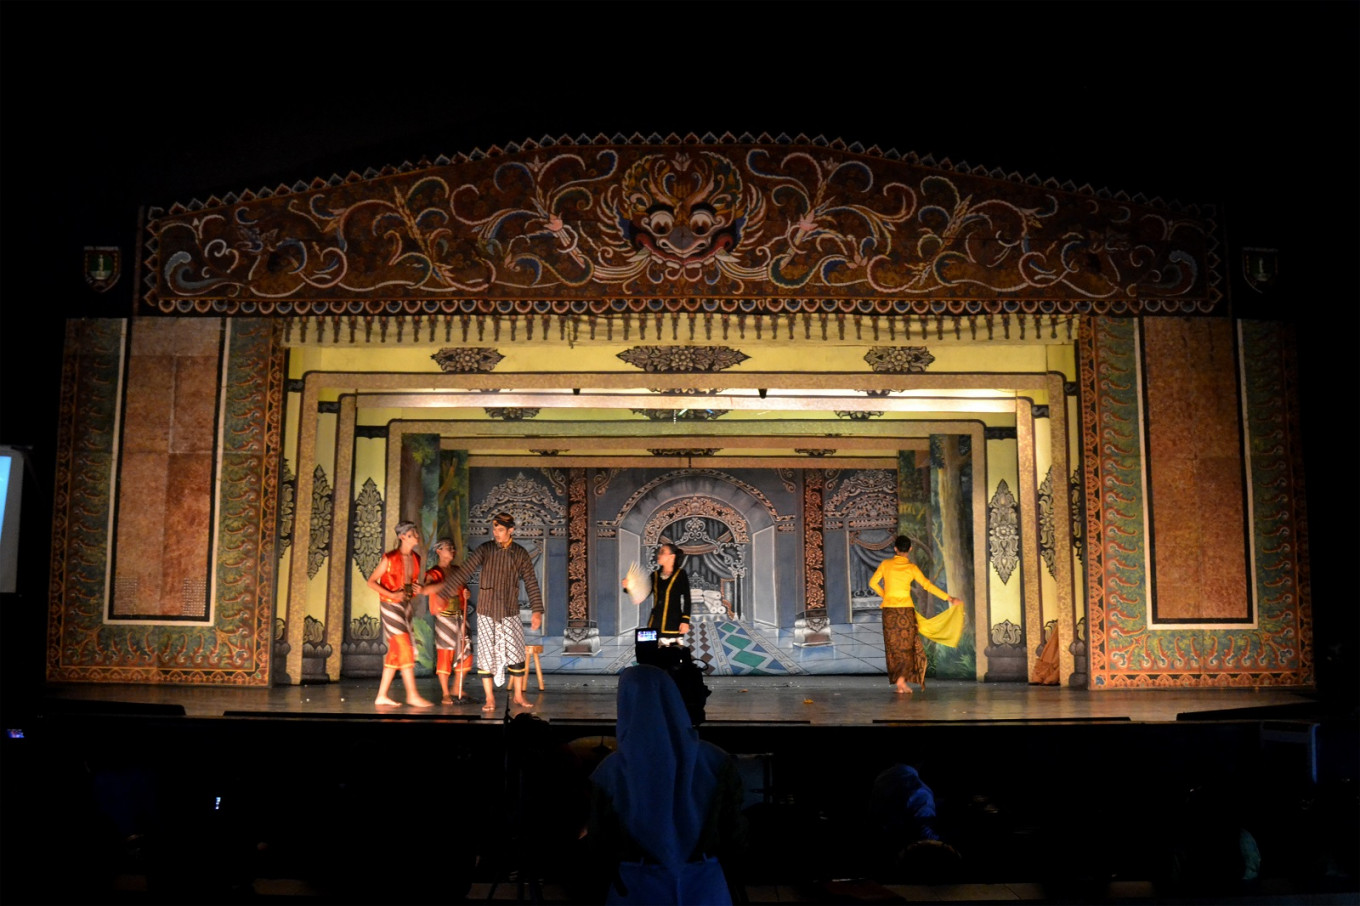 Students of SMPN 4 Surakarta junior high school light up the Wayang Orang Sriwedari stage on Feb. 14 with their 'wayang orang' and 'ketoprak' performances in Surakarta, Central Java. The show was an exam for three arts and culture subjects.